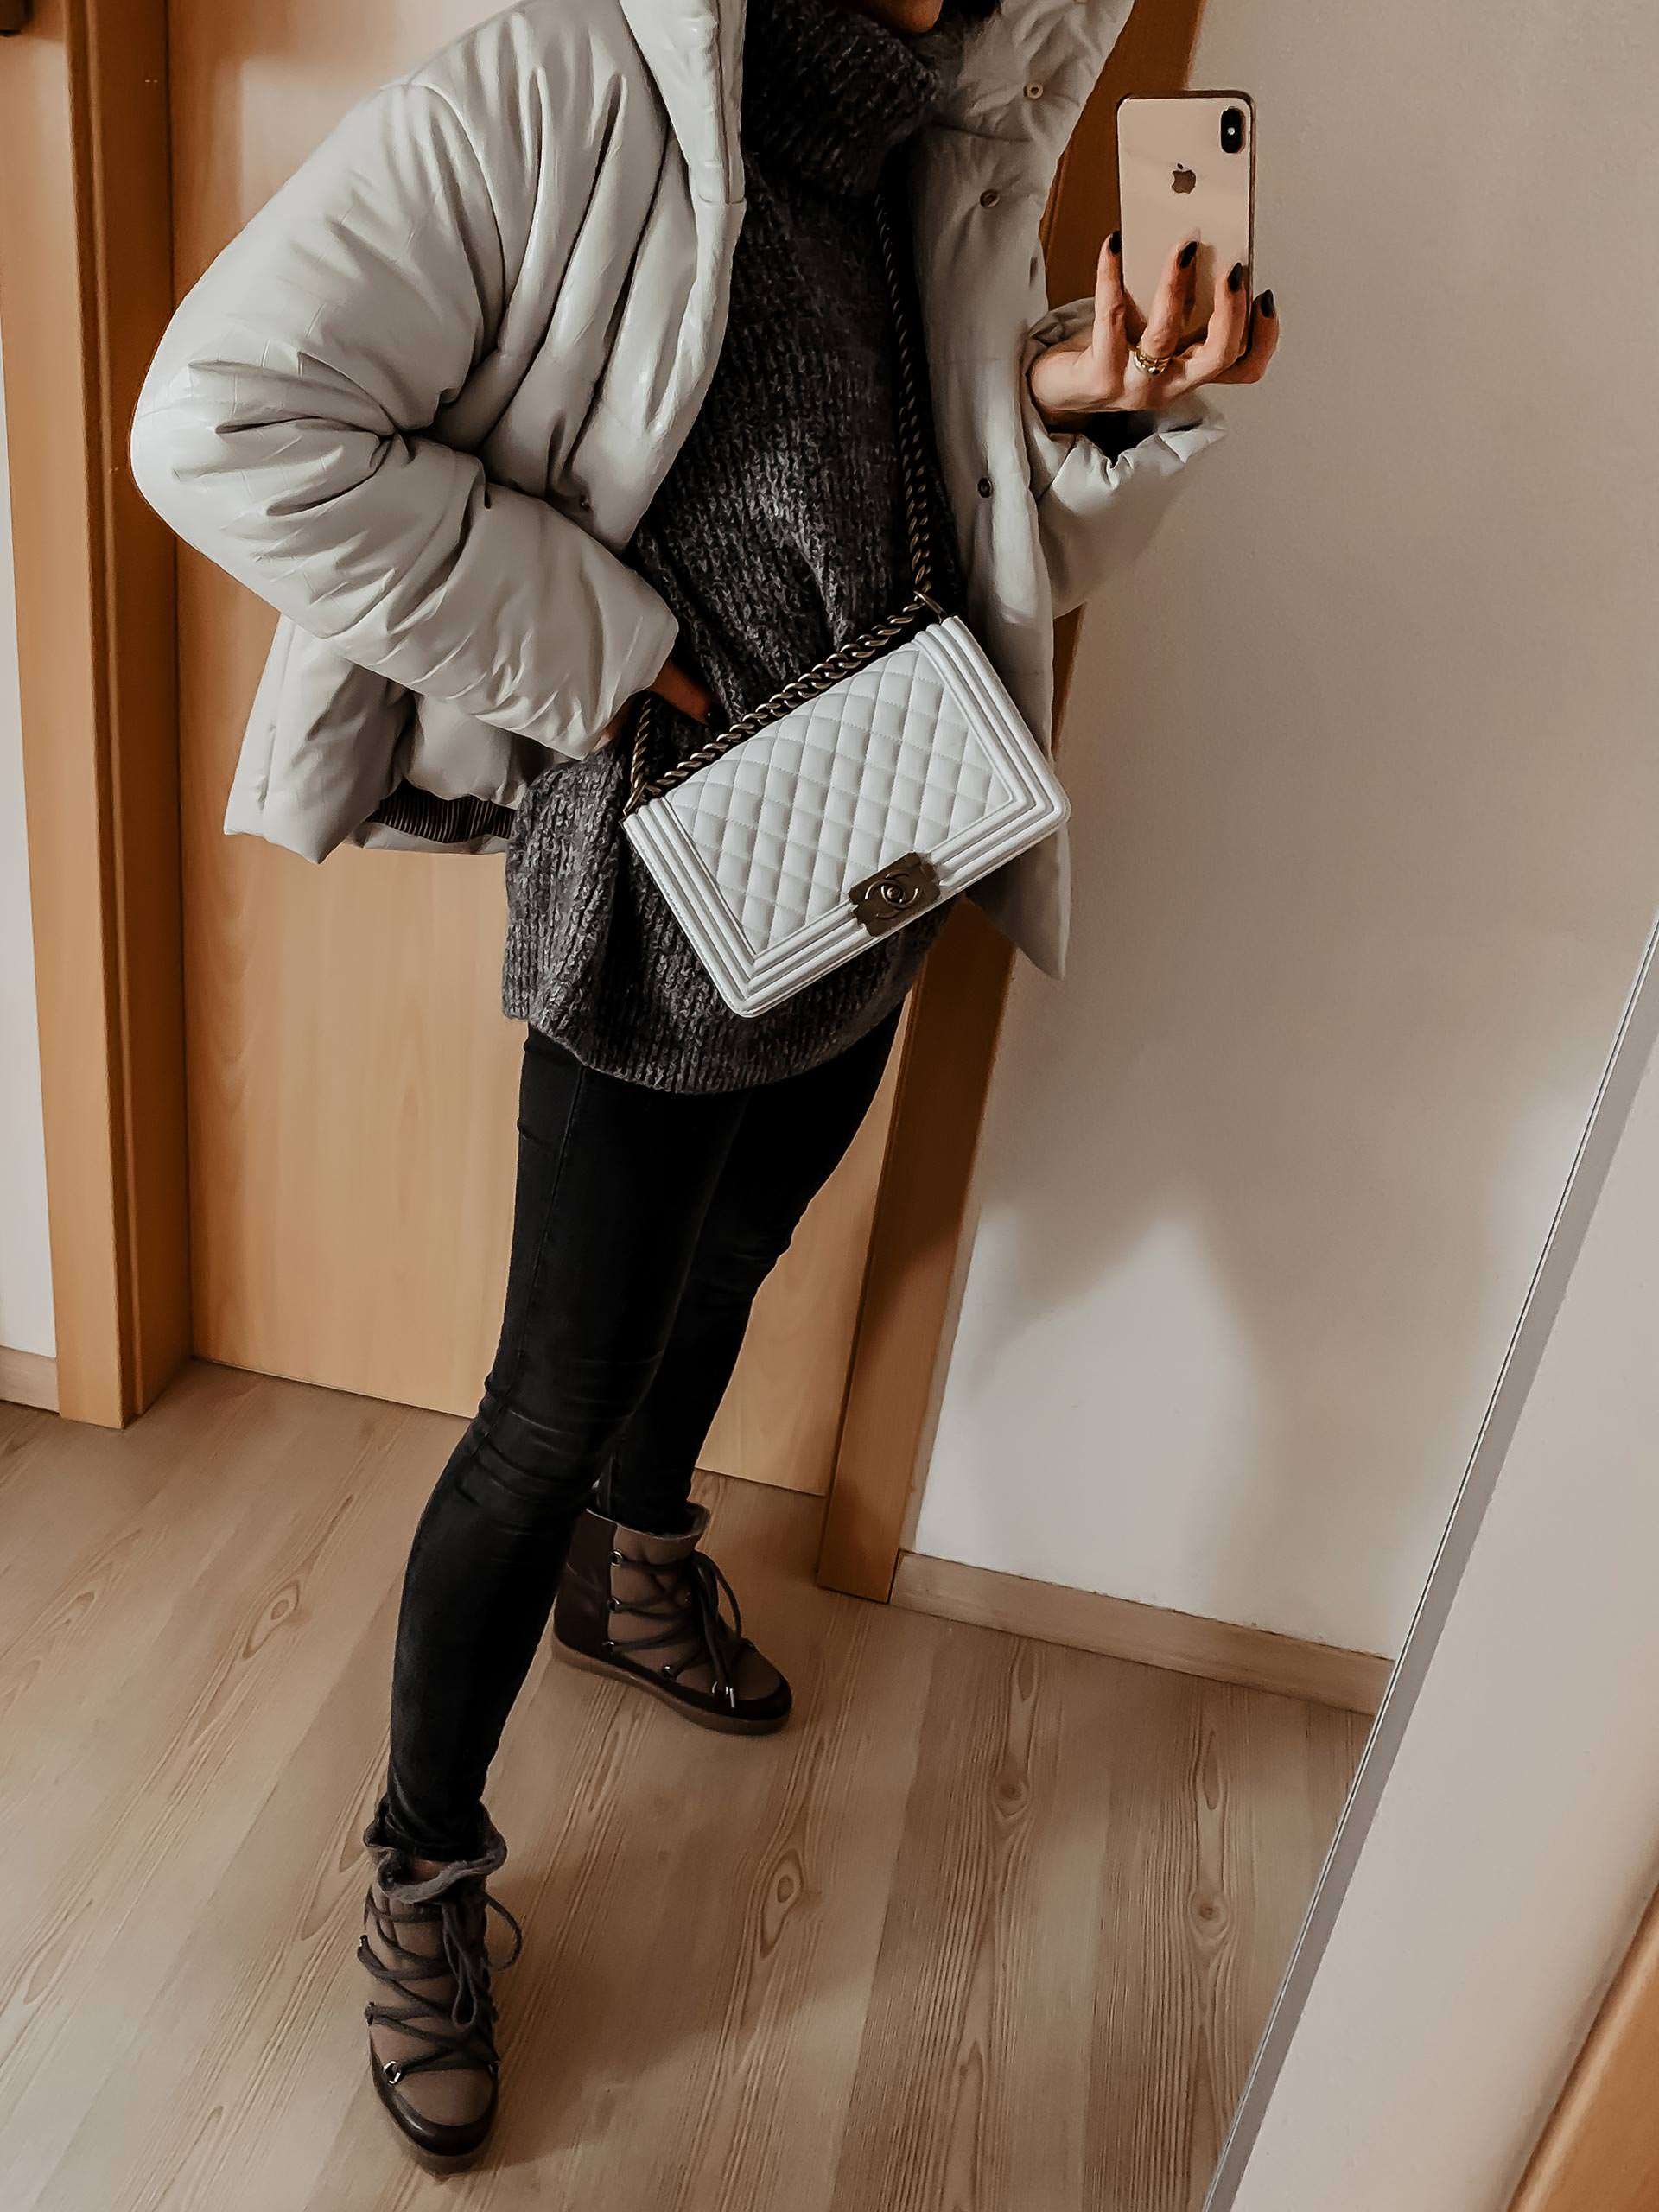 enthält unbeauftragte Werbung. Editor's Picks, winter 2018/19 mode, Modeblog, trendreport, winter trends 2018/19, was ist im winter 2018 modern, capsule wardrobe winter 2018, Alltagsoutfits, outfit im winter, Chanel boy bag, isabel marant nowles boots, nanushka jacke, Mode Tipps, Wintertrends, www.whoismocca.com, #modetrends #wintertrends #outfit #editorspicks #chanel #isabelmarant #nanushka